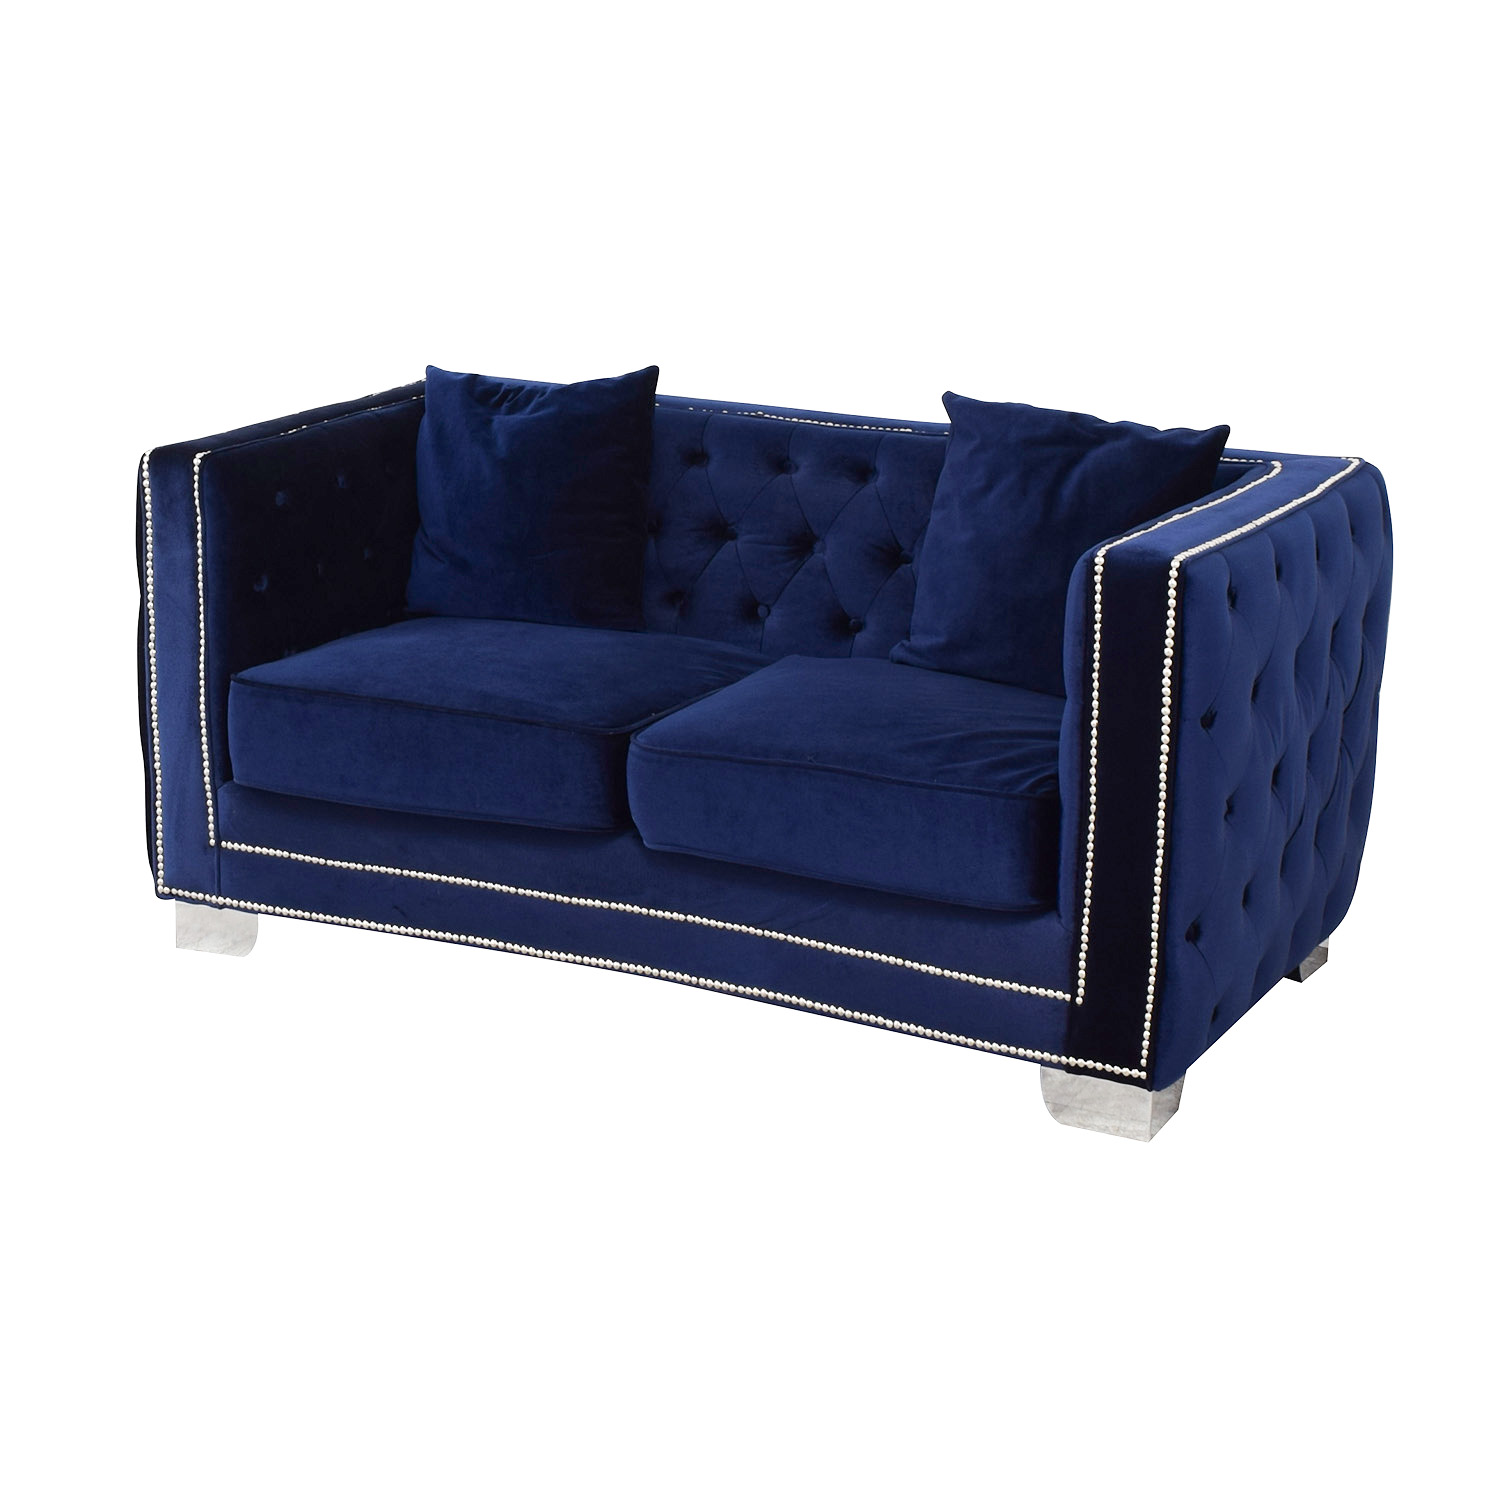 89% OFF - Ashley Furniture Ashley Furniture Blue Tufted Nailhead  Two-Cushion Loveseat / Sofas